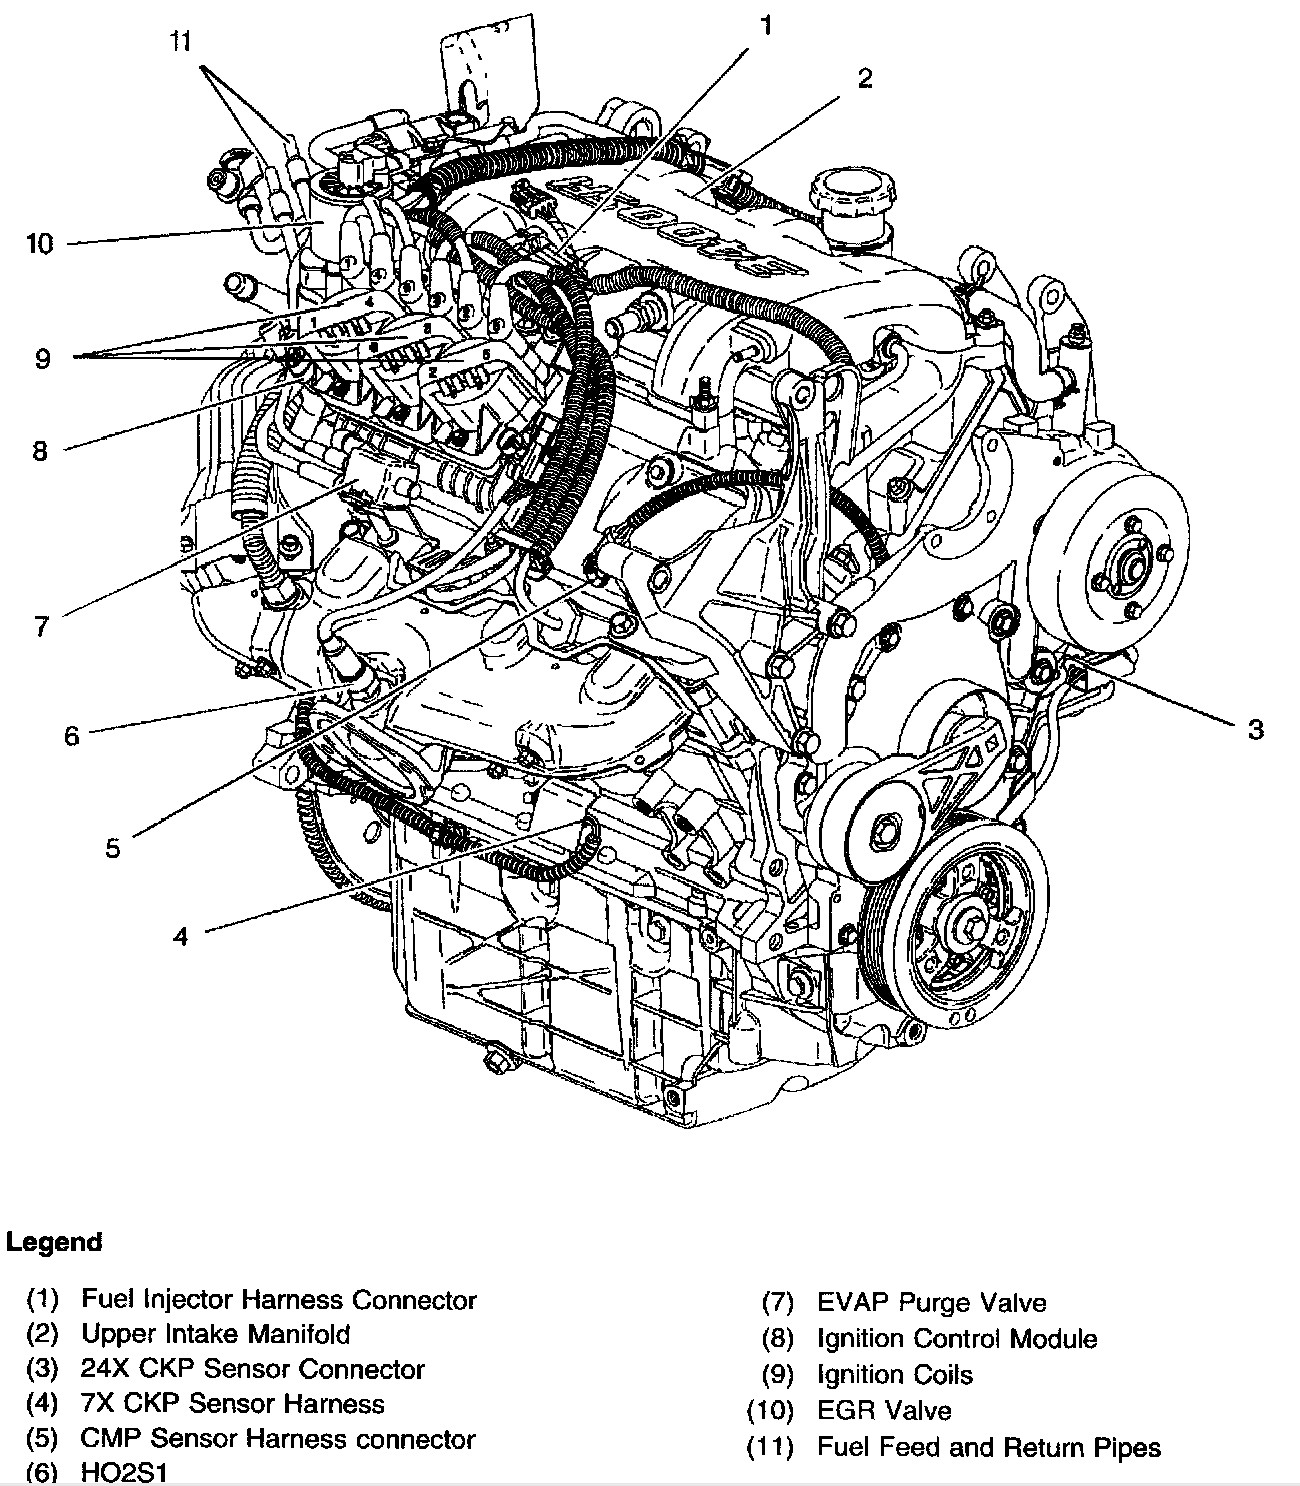 Chevy Cavalier Engine Diagram Chevy P30 Wiring Diagram